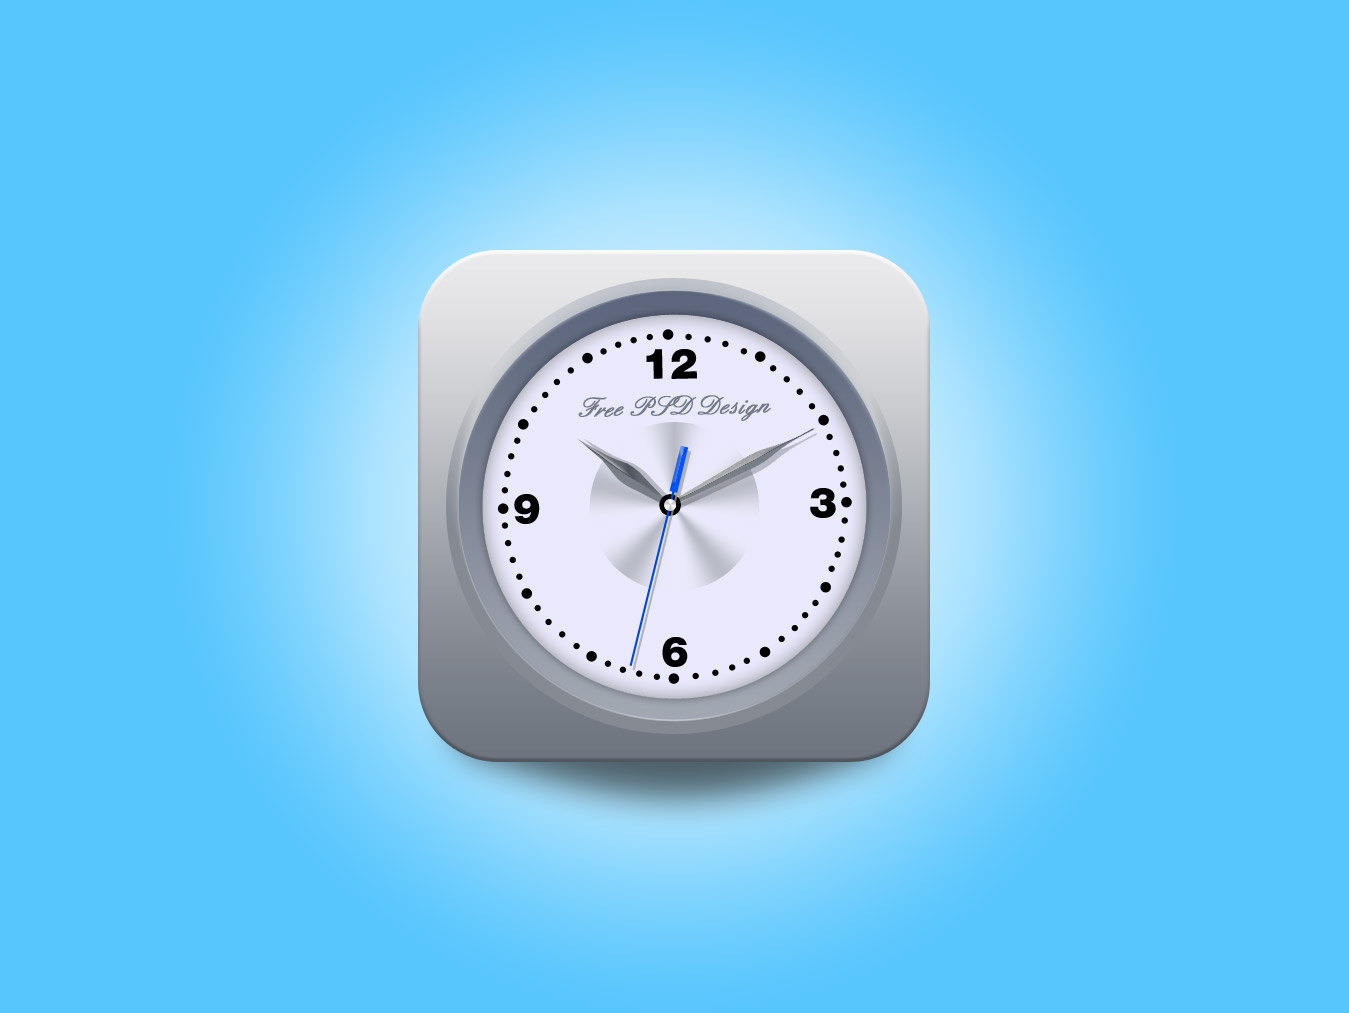 Watch psd mockup icon